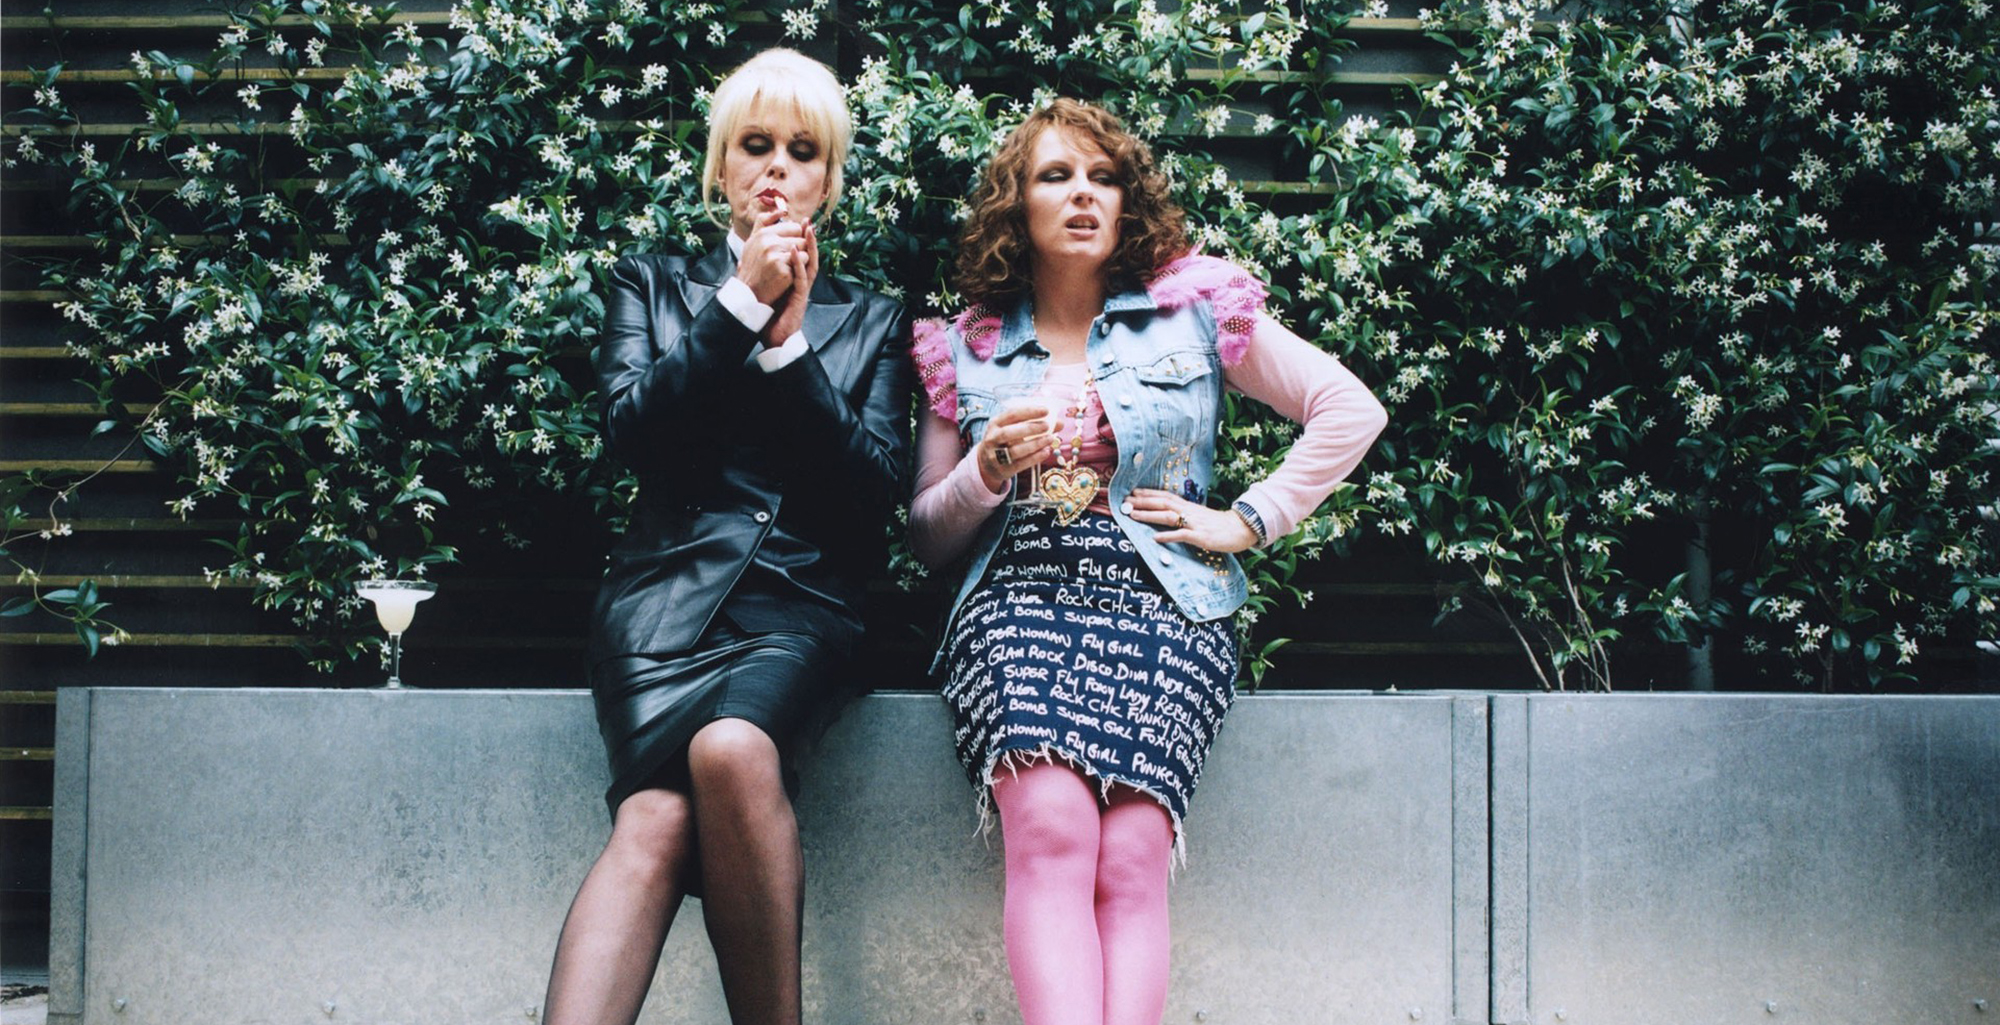 http://www.thecinemen.com/wp-content/uploads/2016/07/anglo_2000x1025_abfabmovie1.jpg